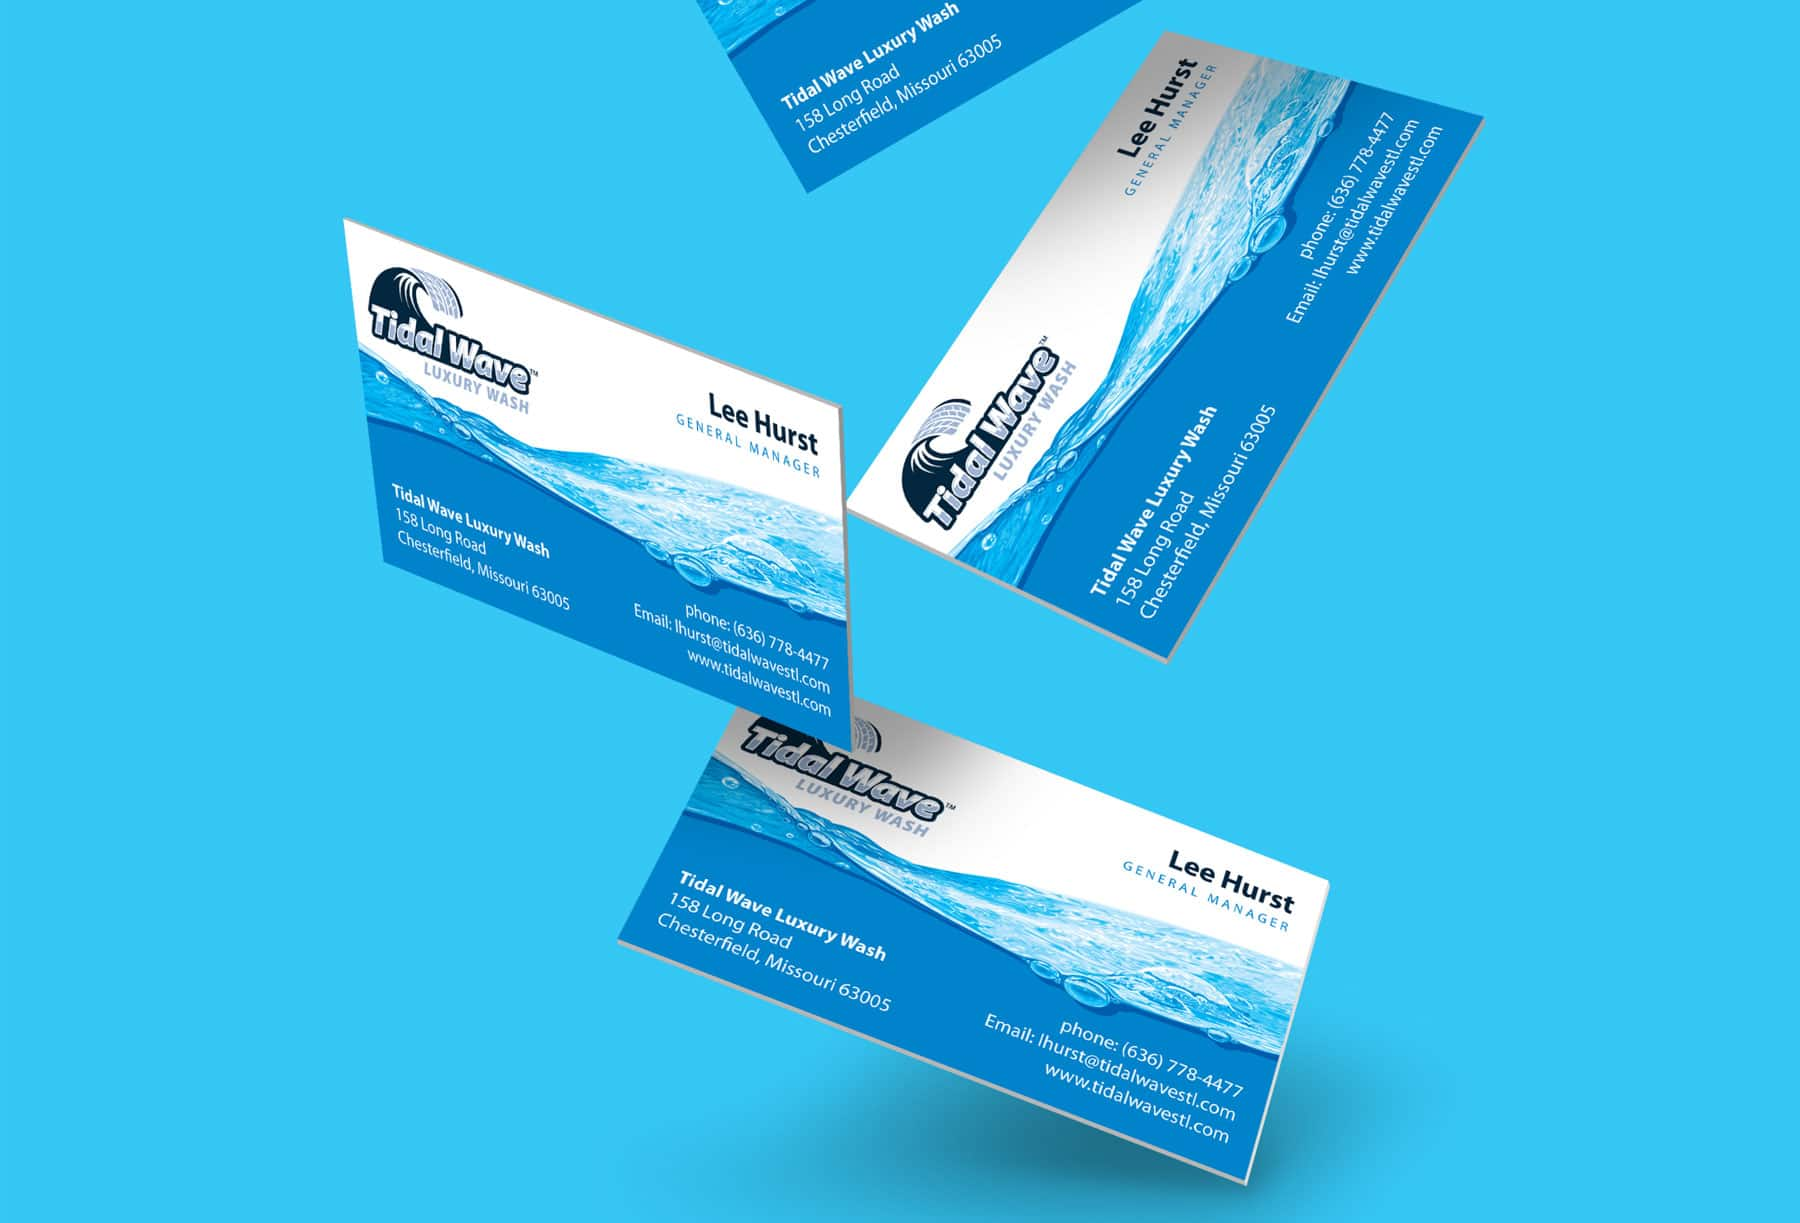 Tidal Wave business card design